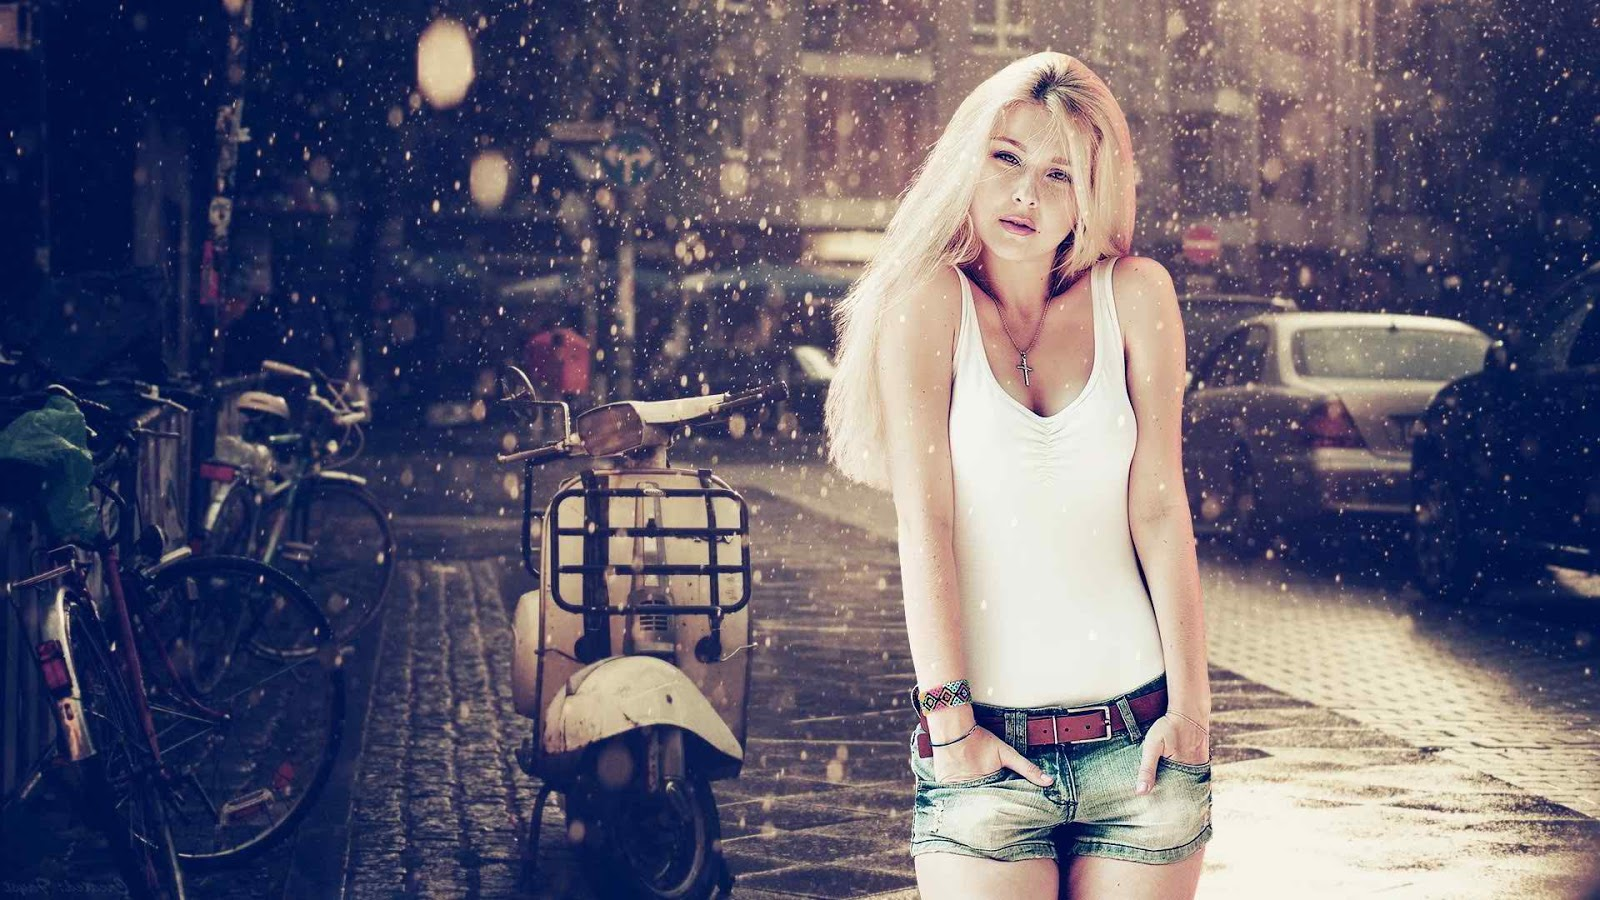 Heart Touching Sad Girl Wallpaper Girl In Rain Profile Dp For Whatsapp And Facebook